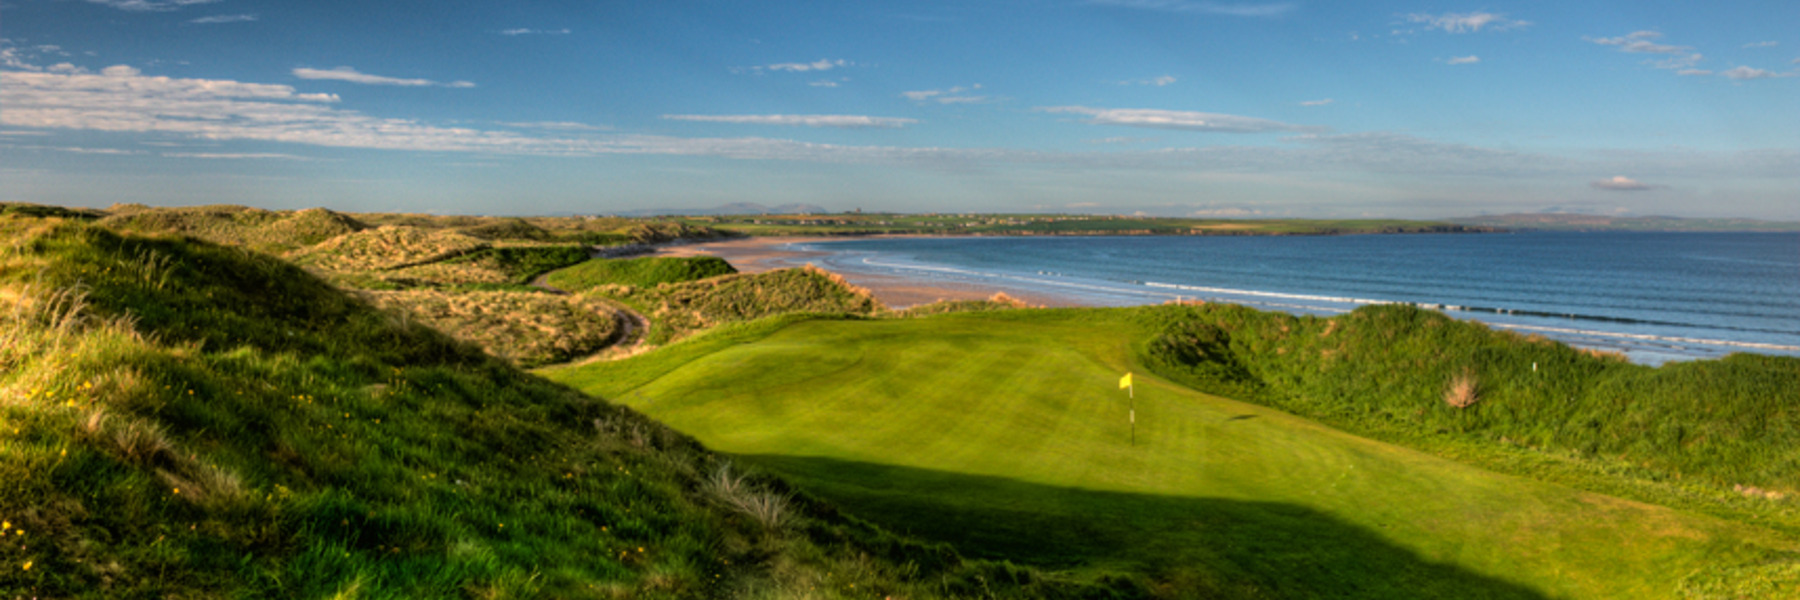 Golf Vacation Package - South West Ireland Stay and Play - 5 Nights / 4 Rounds + Minivan for $1549 total per person!